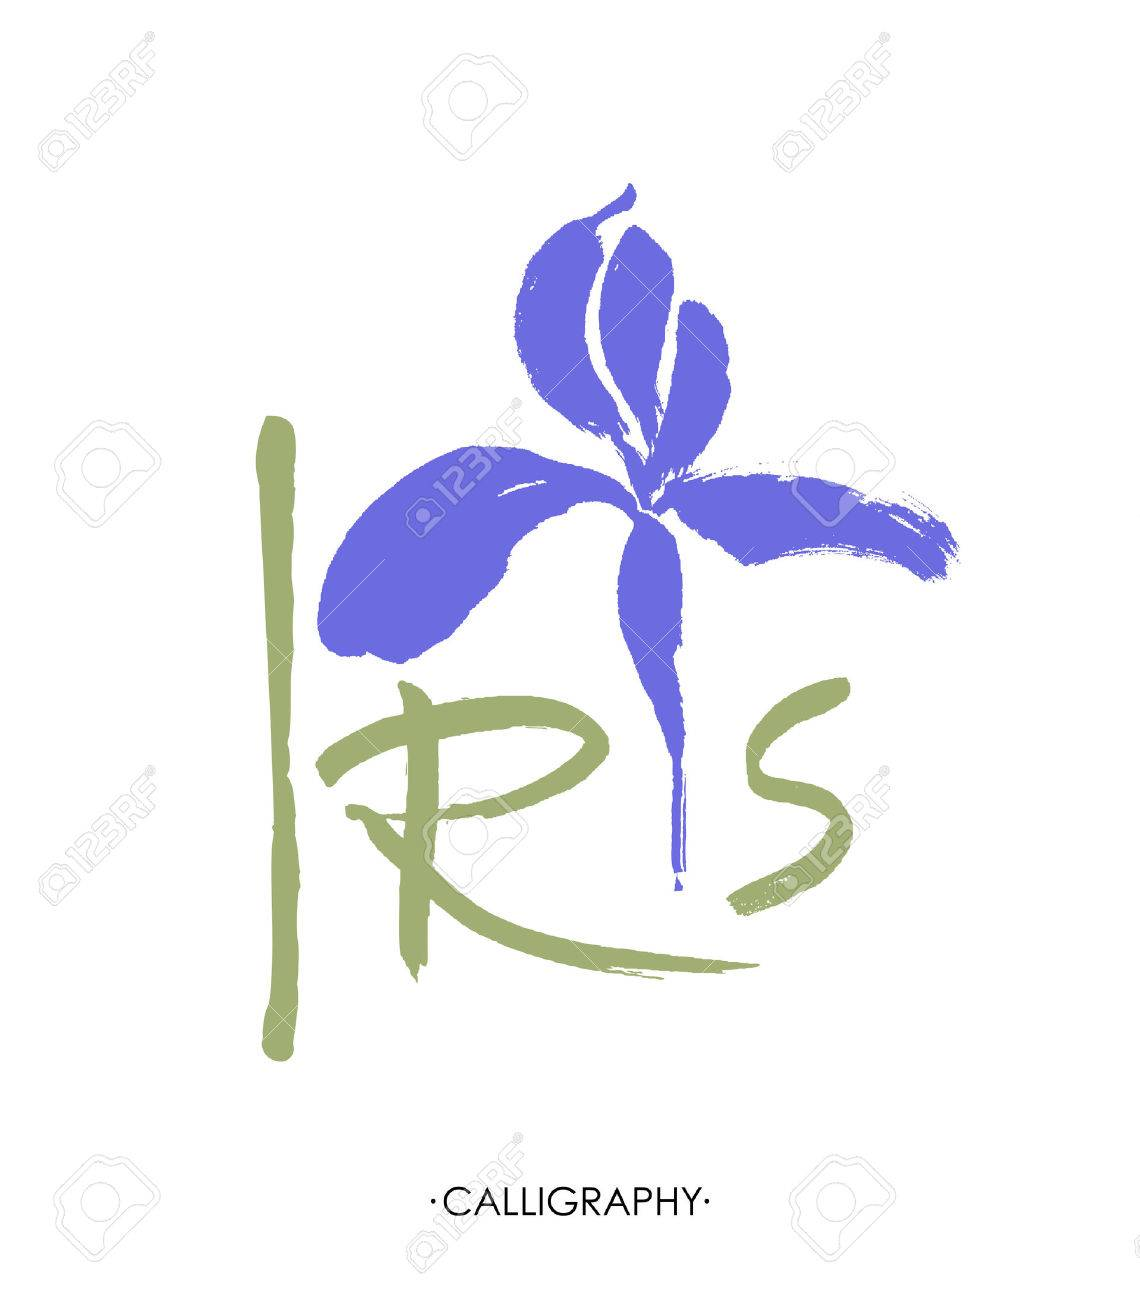 Vector flower logo. Floral background. Stylized calligraphic ink iris. - 76785514